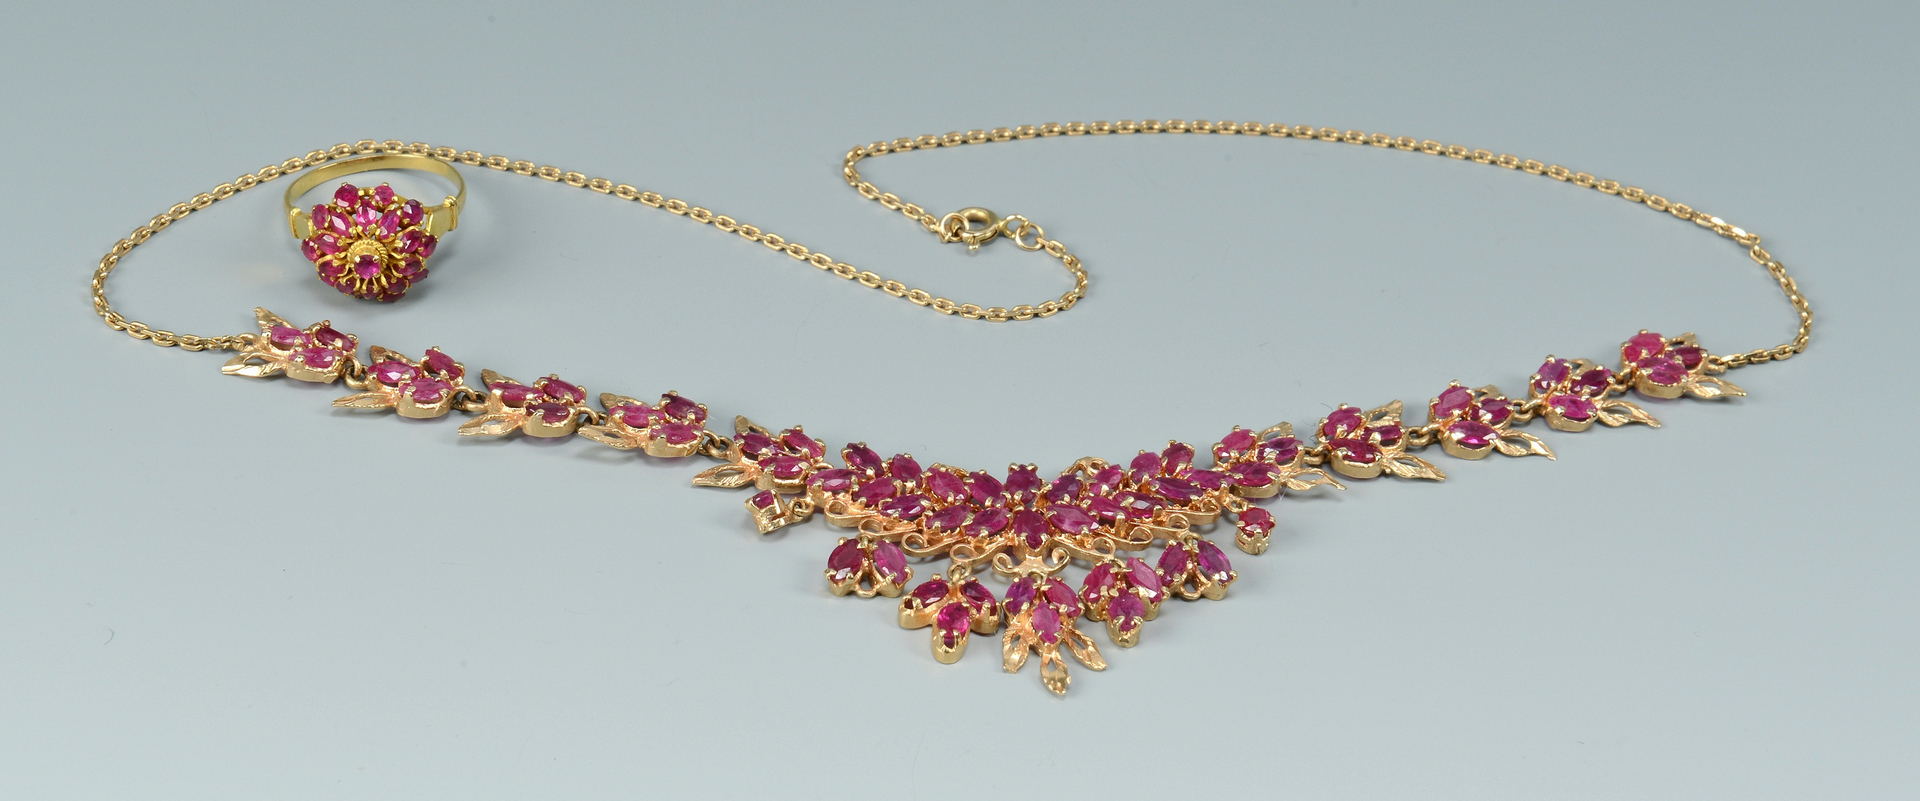 Lot 3088231: 14k Ruby Stone Necklace and Ballerina Ring